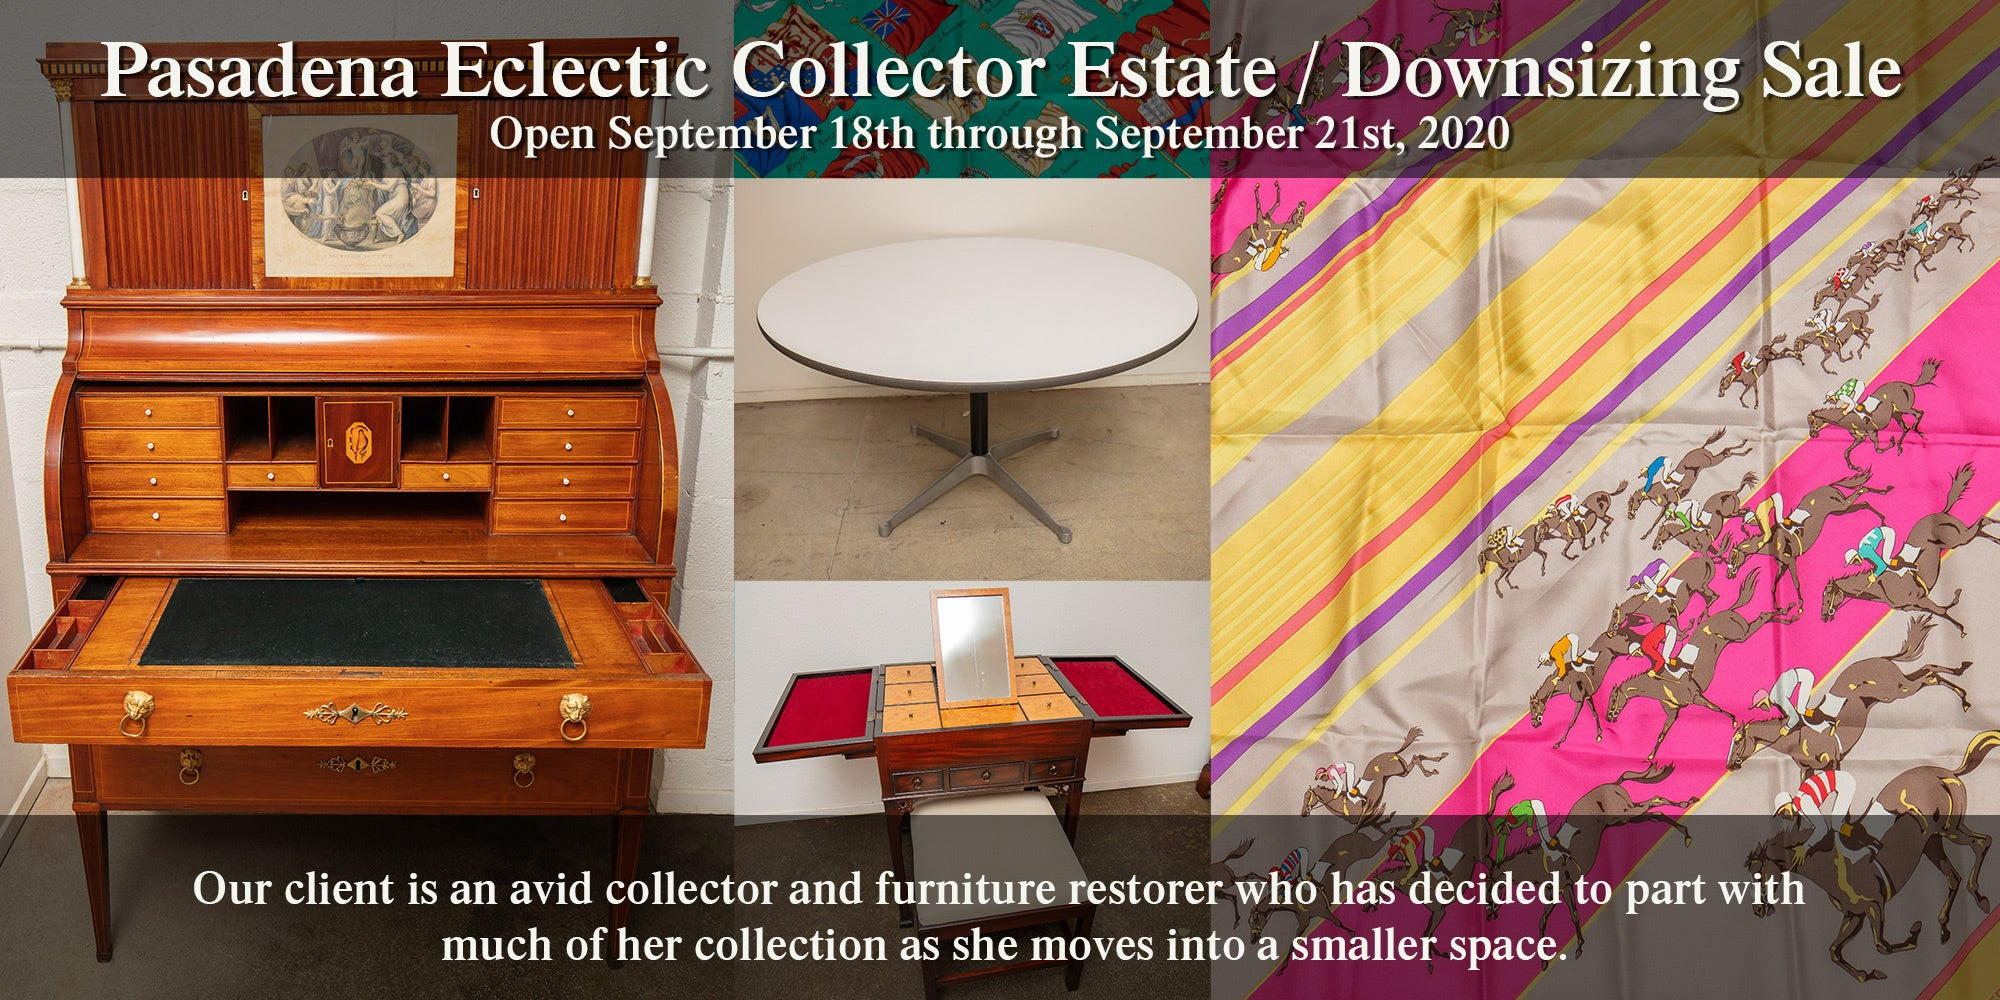 Pasadena Eclectic Collector Estate / Downsizing Sale - September 2020